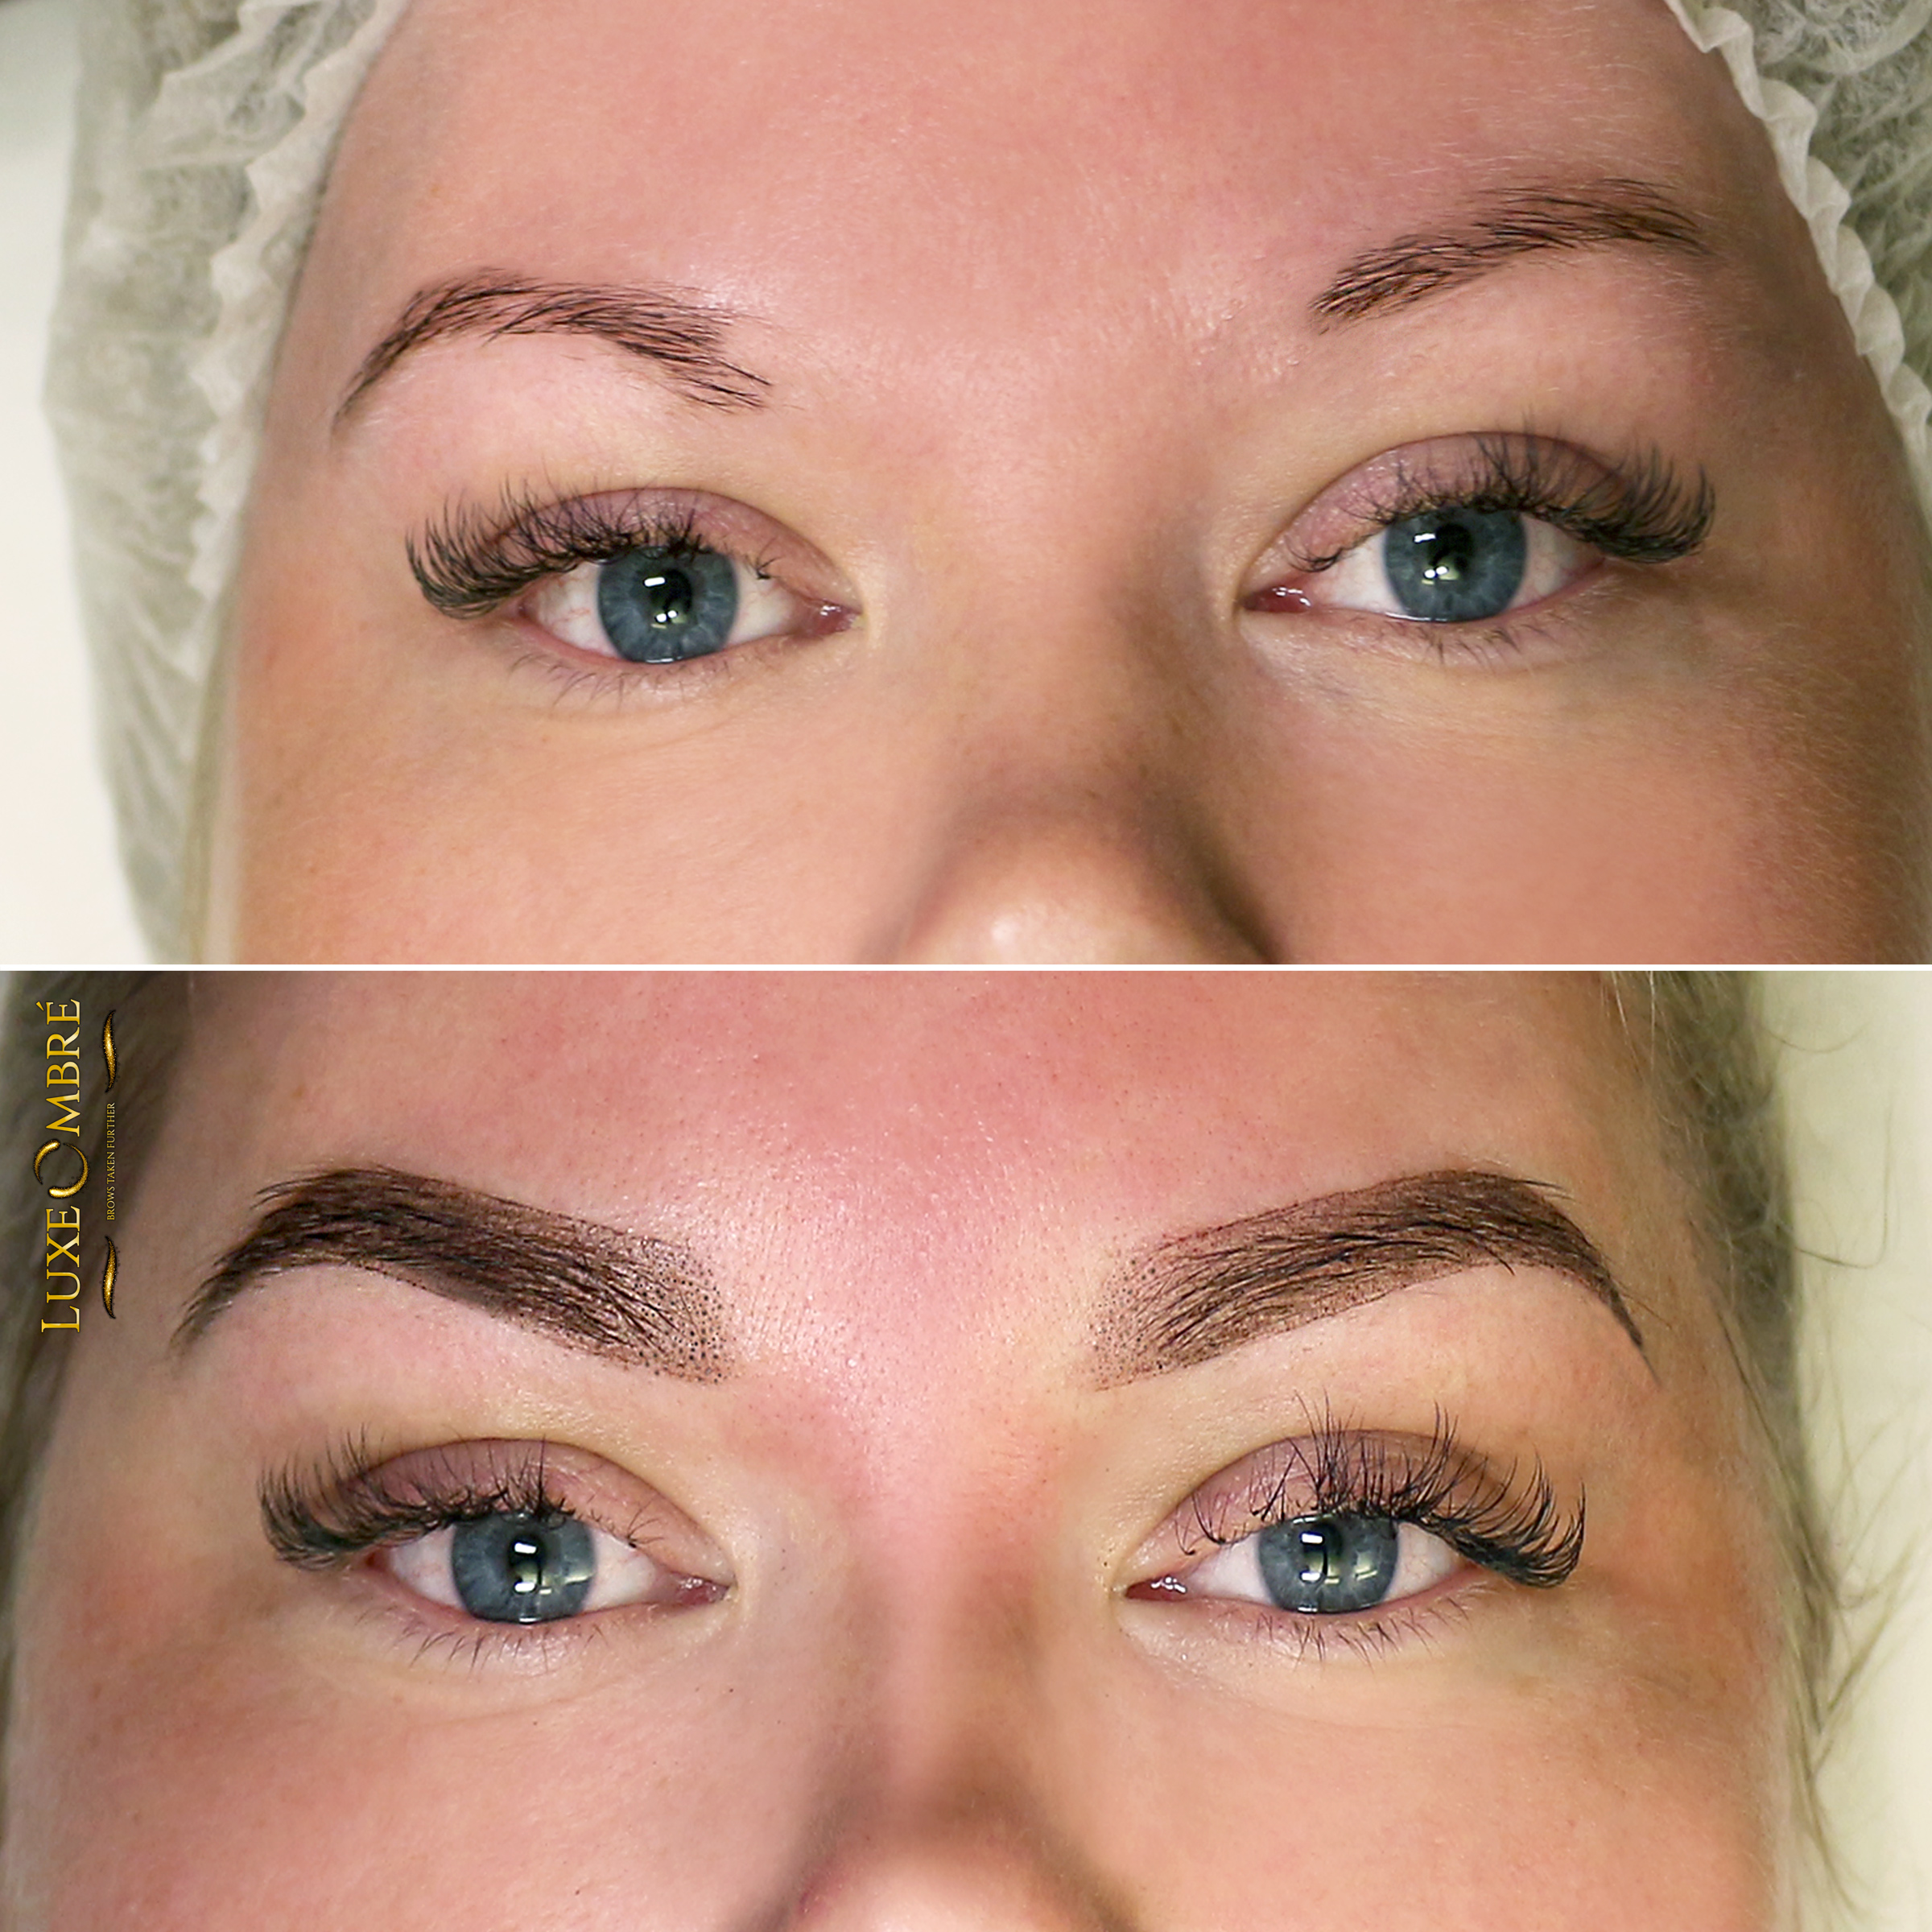 LoxeOmbre saving a pair of brows once again. From ordinary and asymmetric to beautiful.